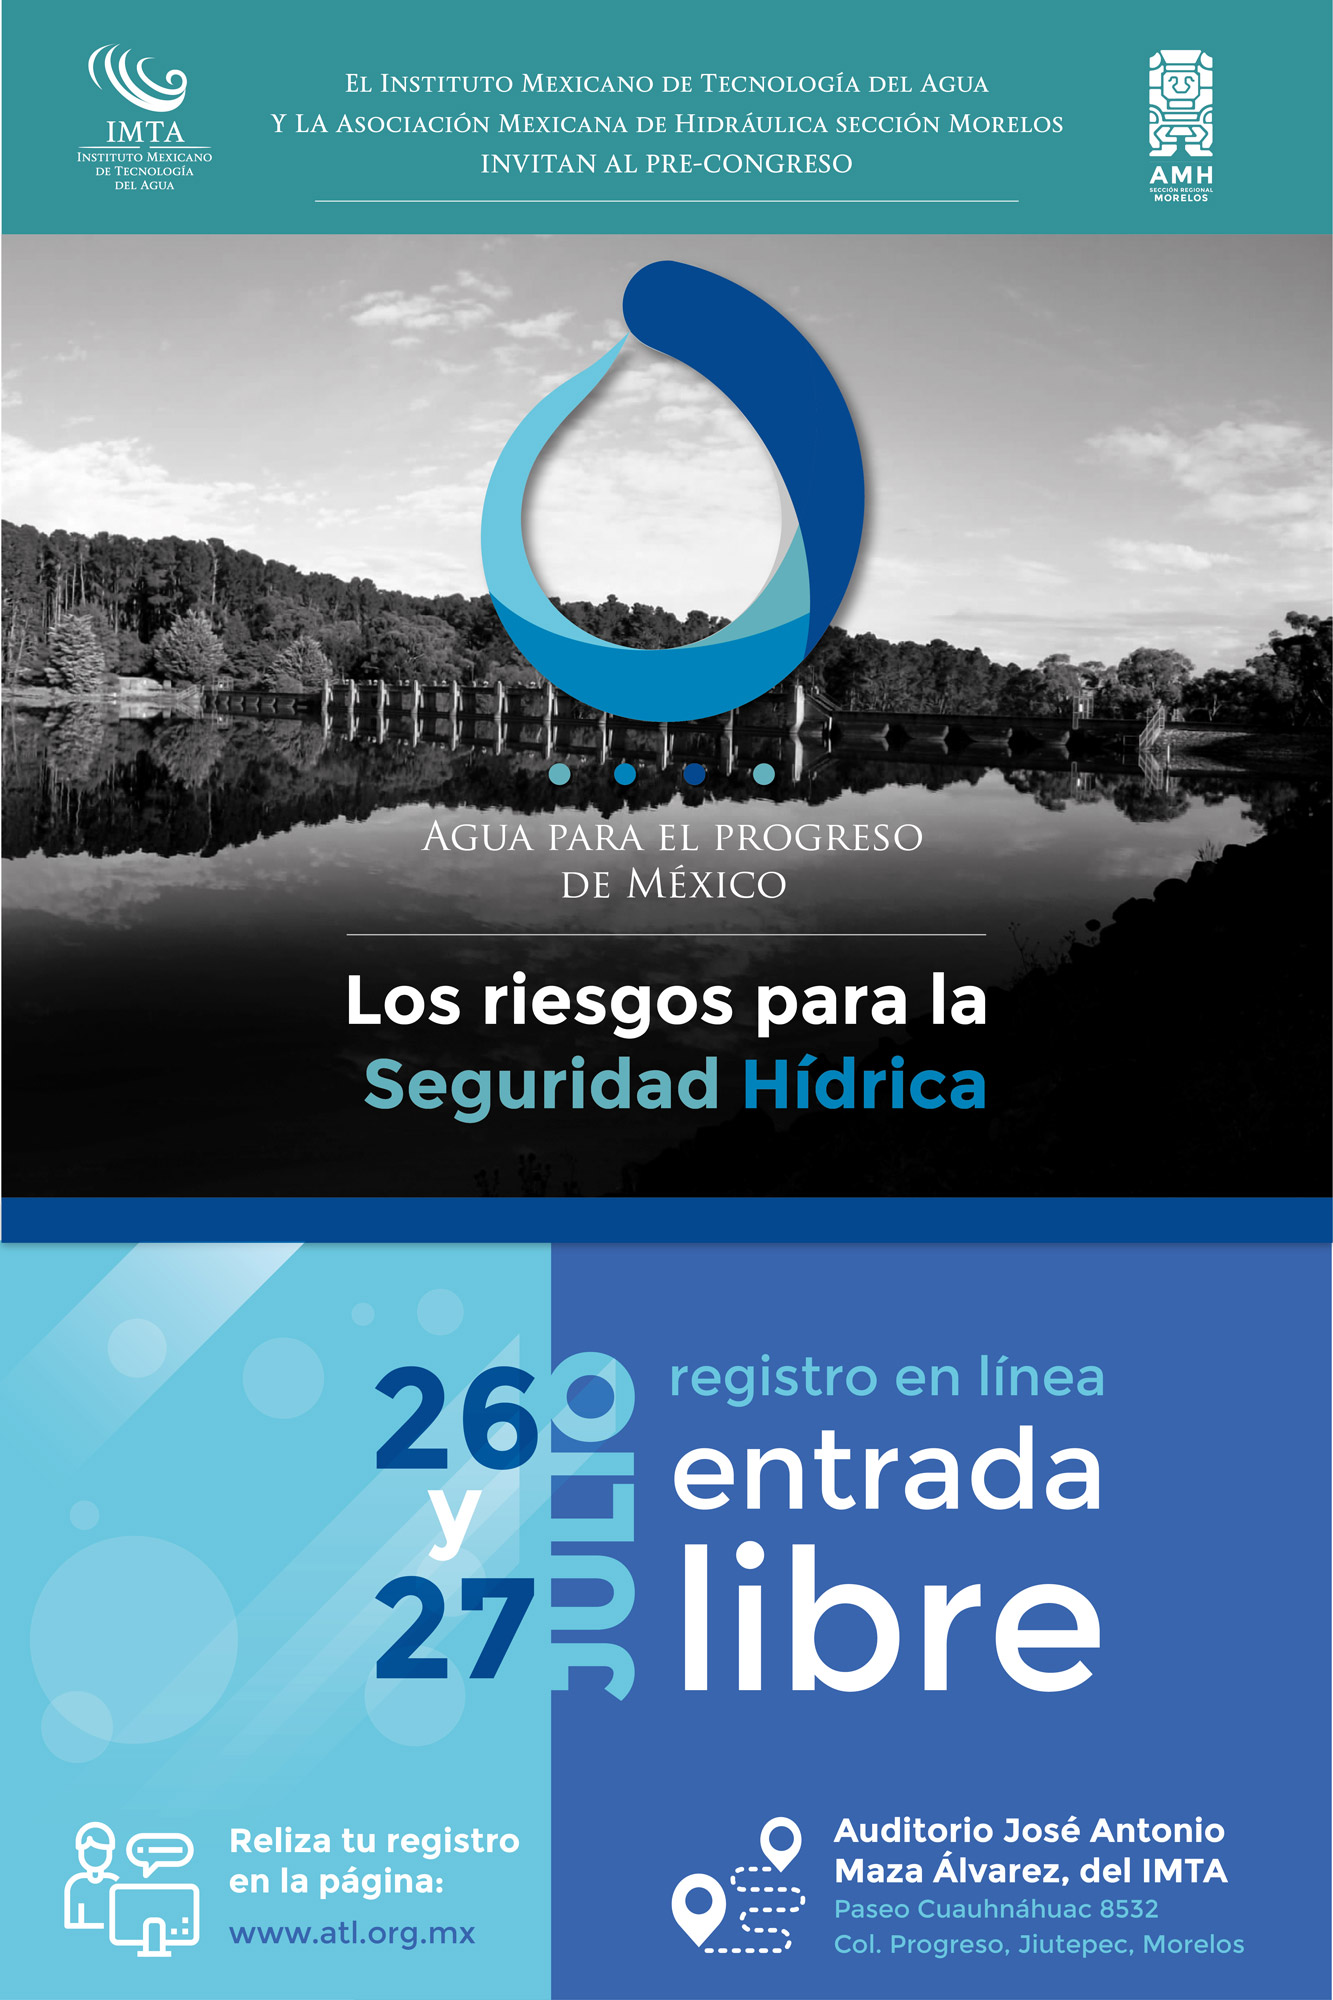 /cms/uploads/image/file/401469/Agua-para-el-progreso-de-mexico-cartel-final--01.jpg